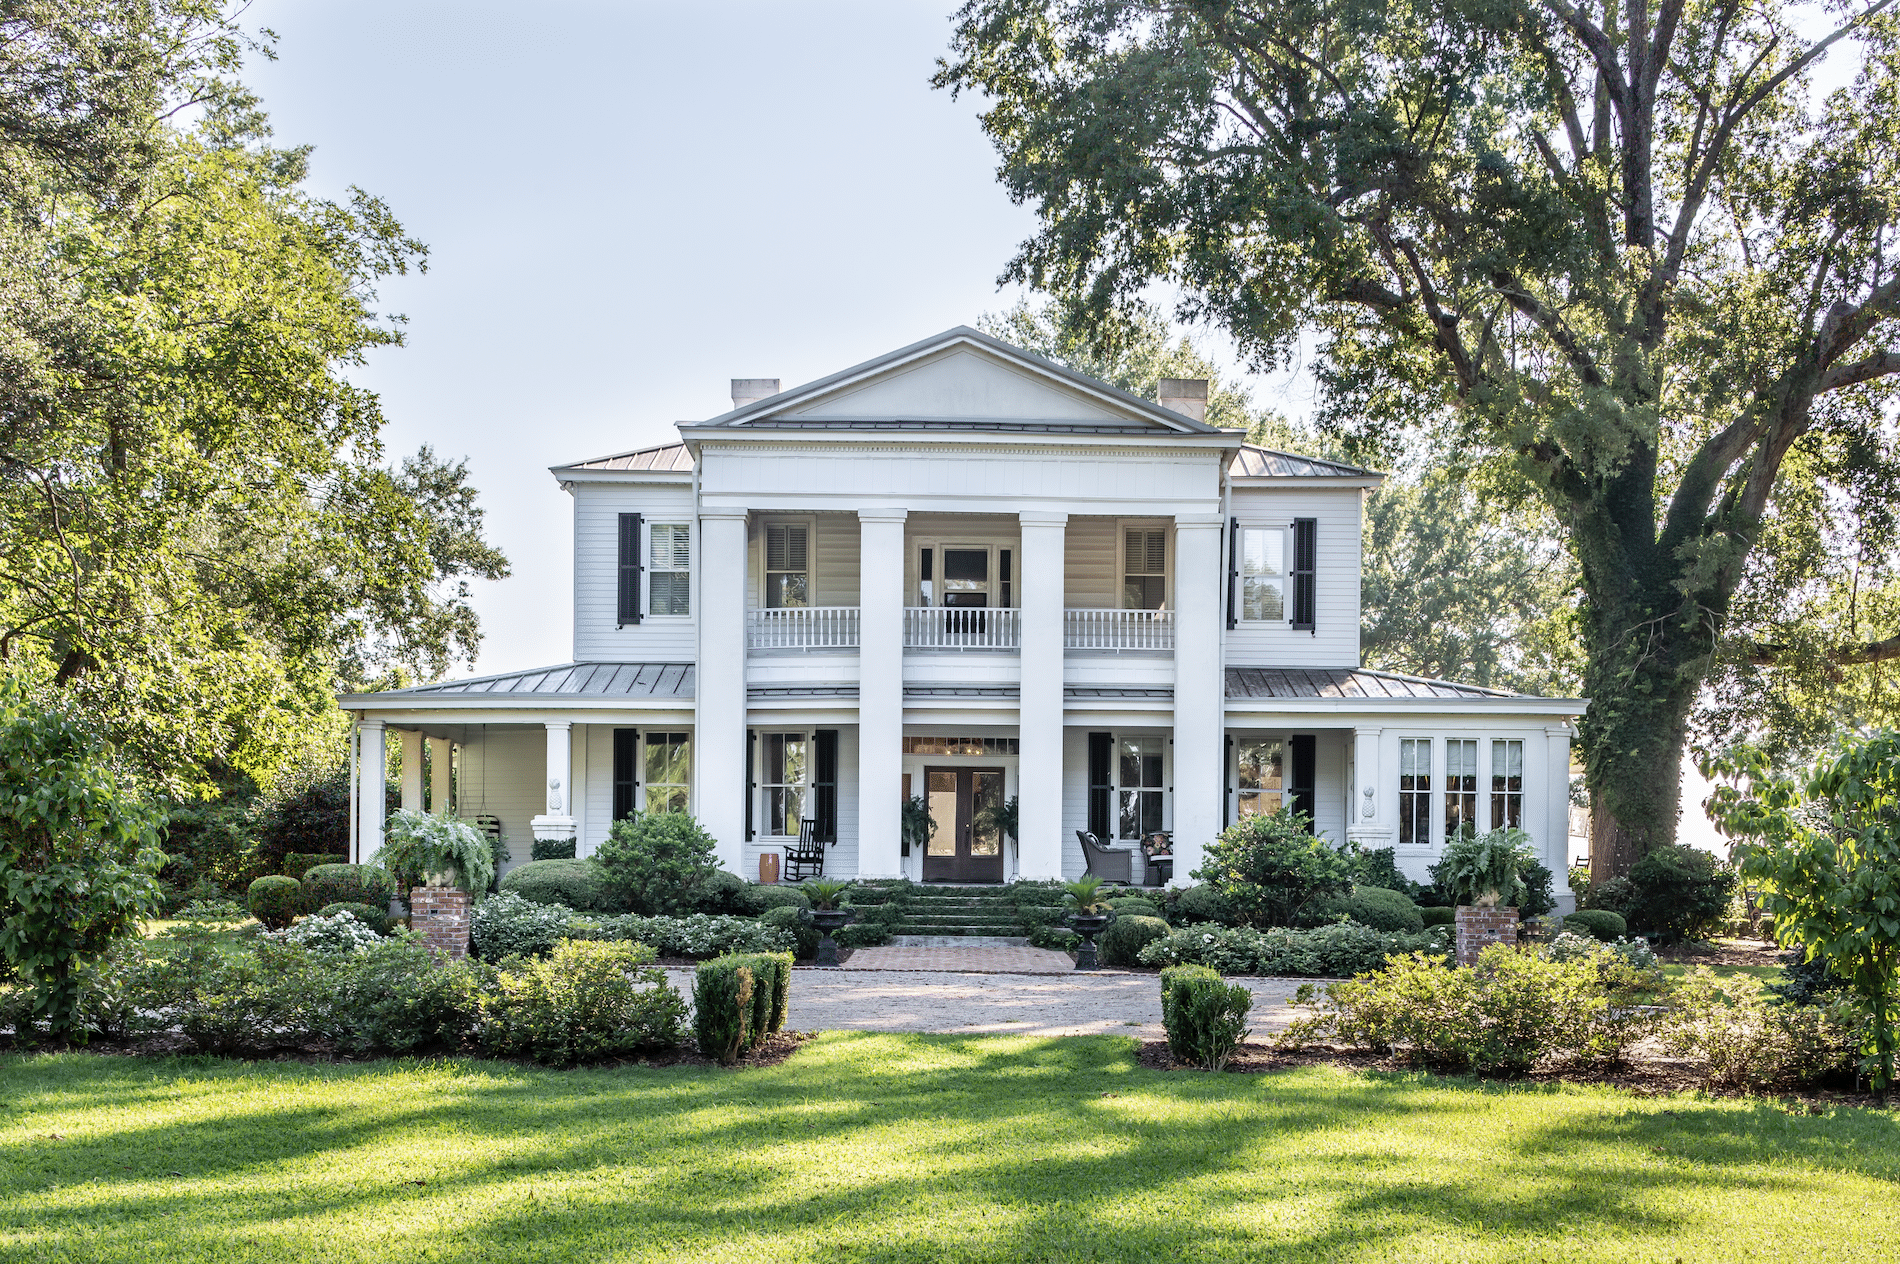 Aiken, SC James Farmer designed house tour